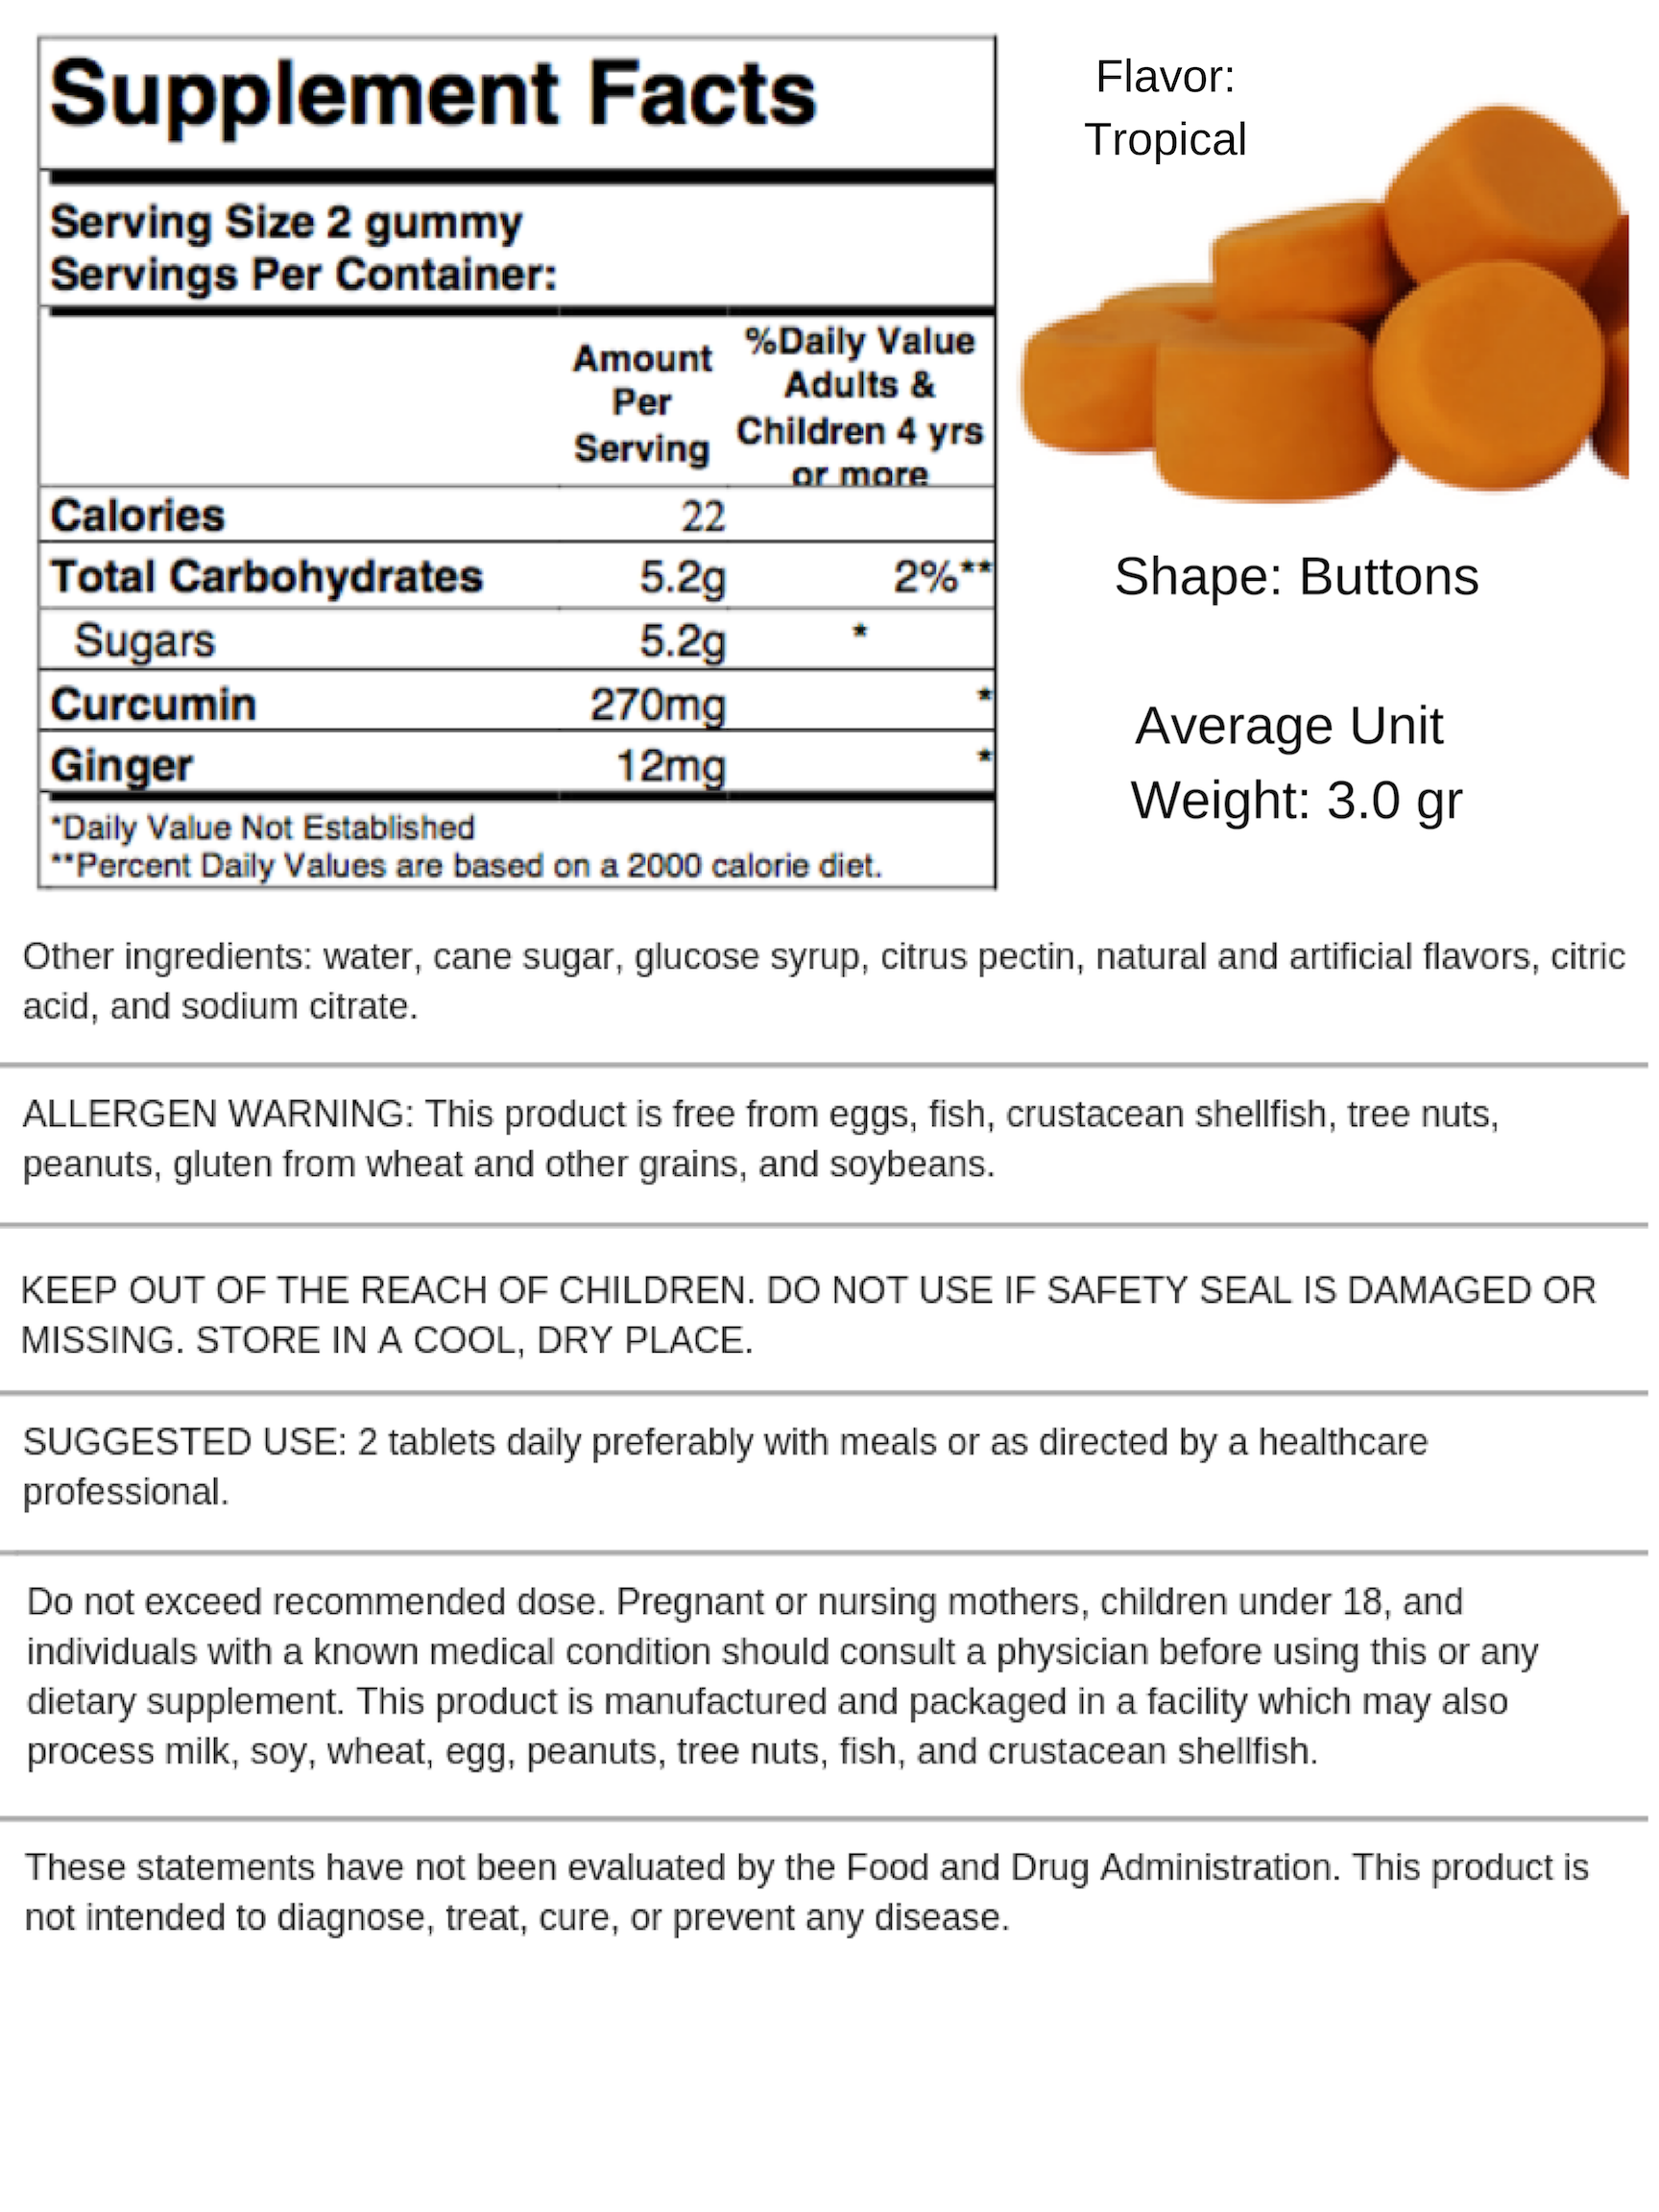 Curcumin and Ginger